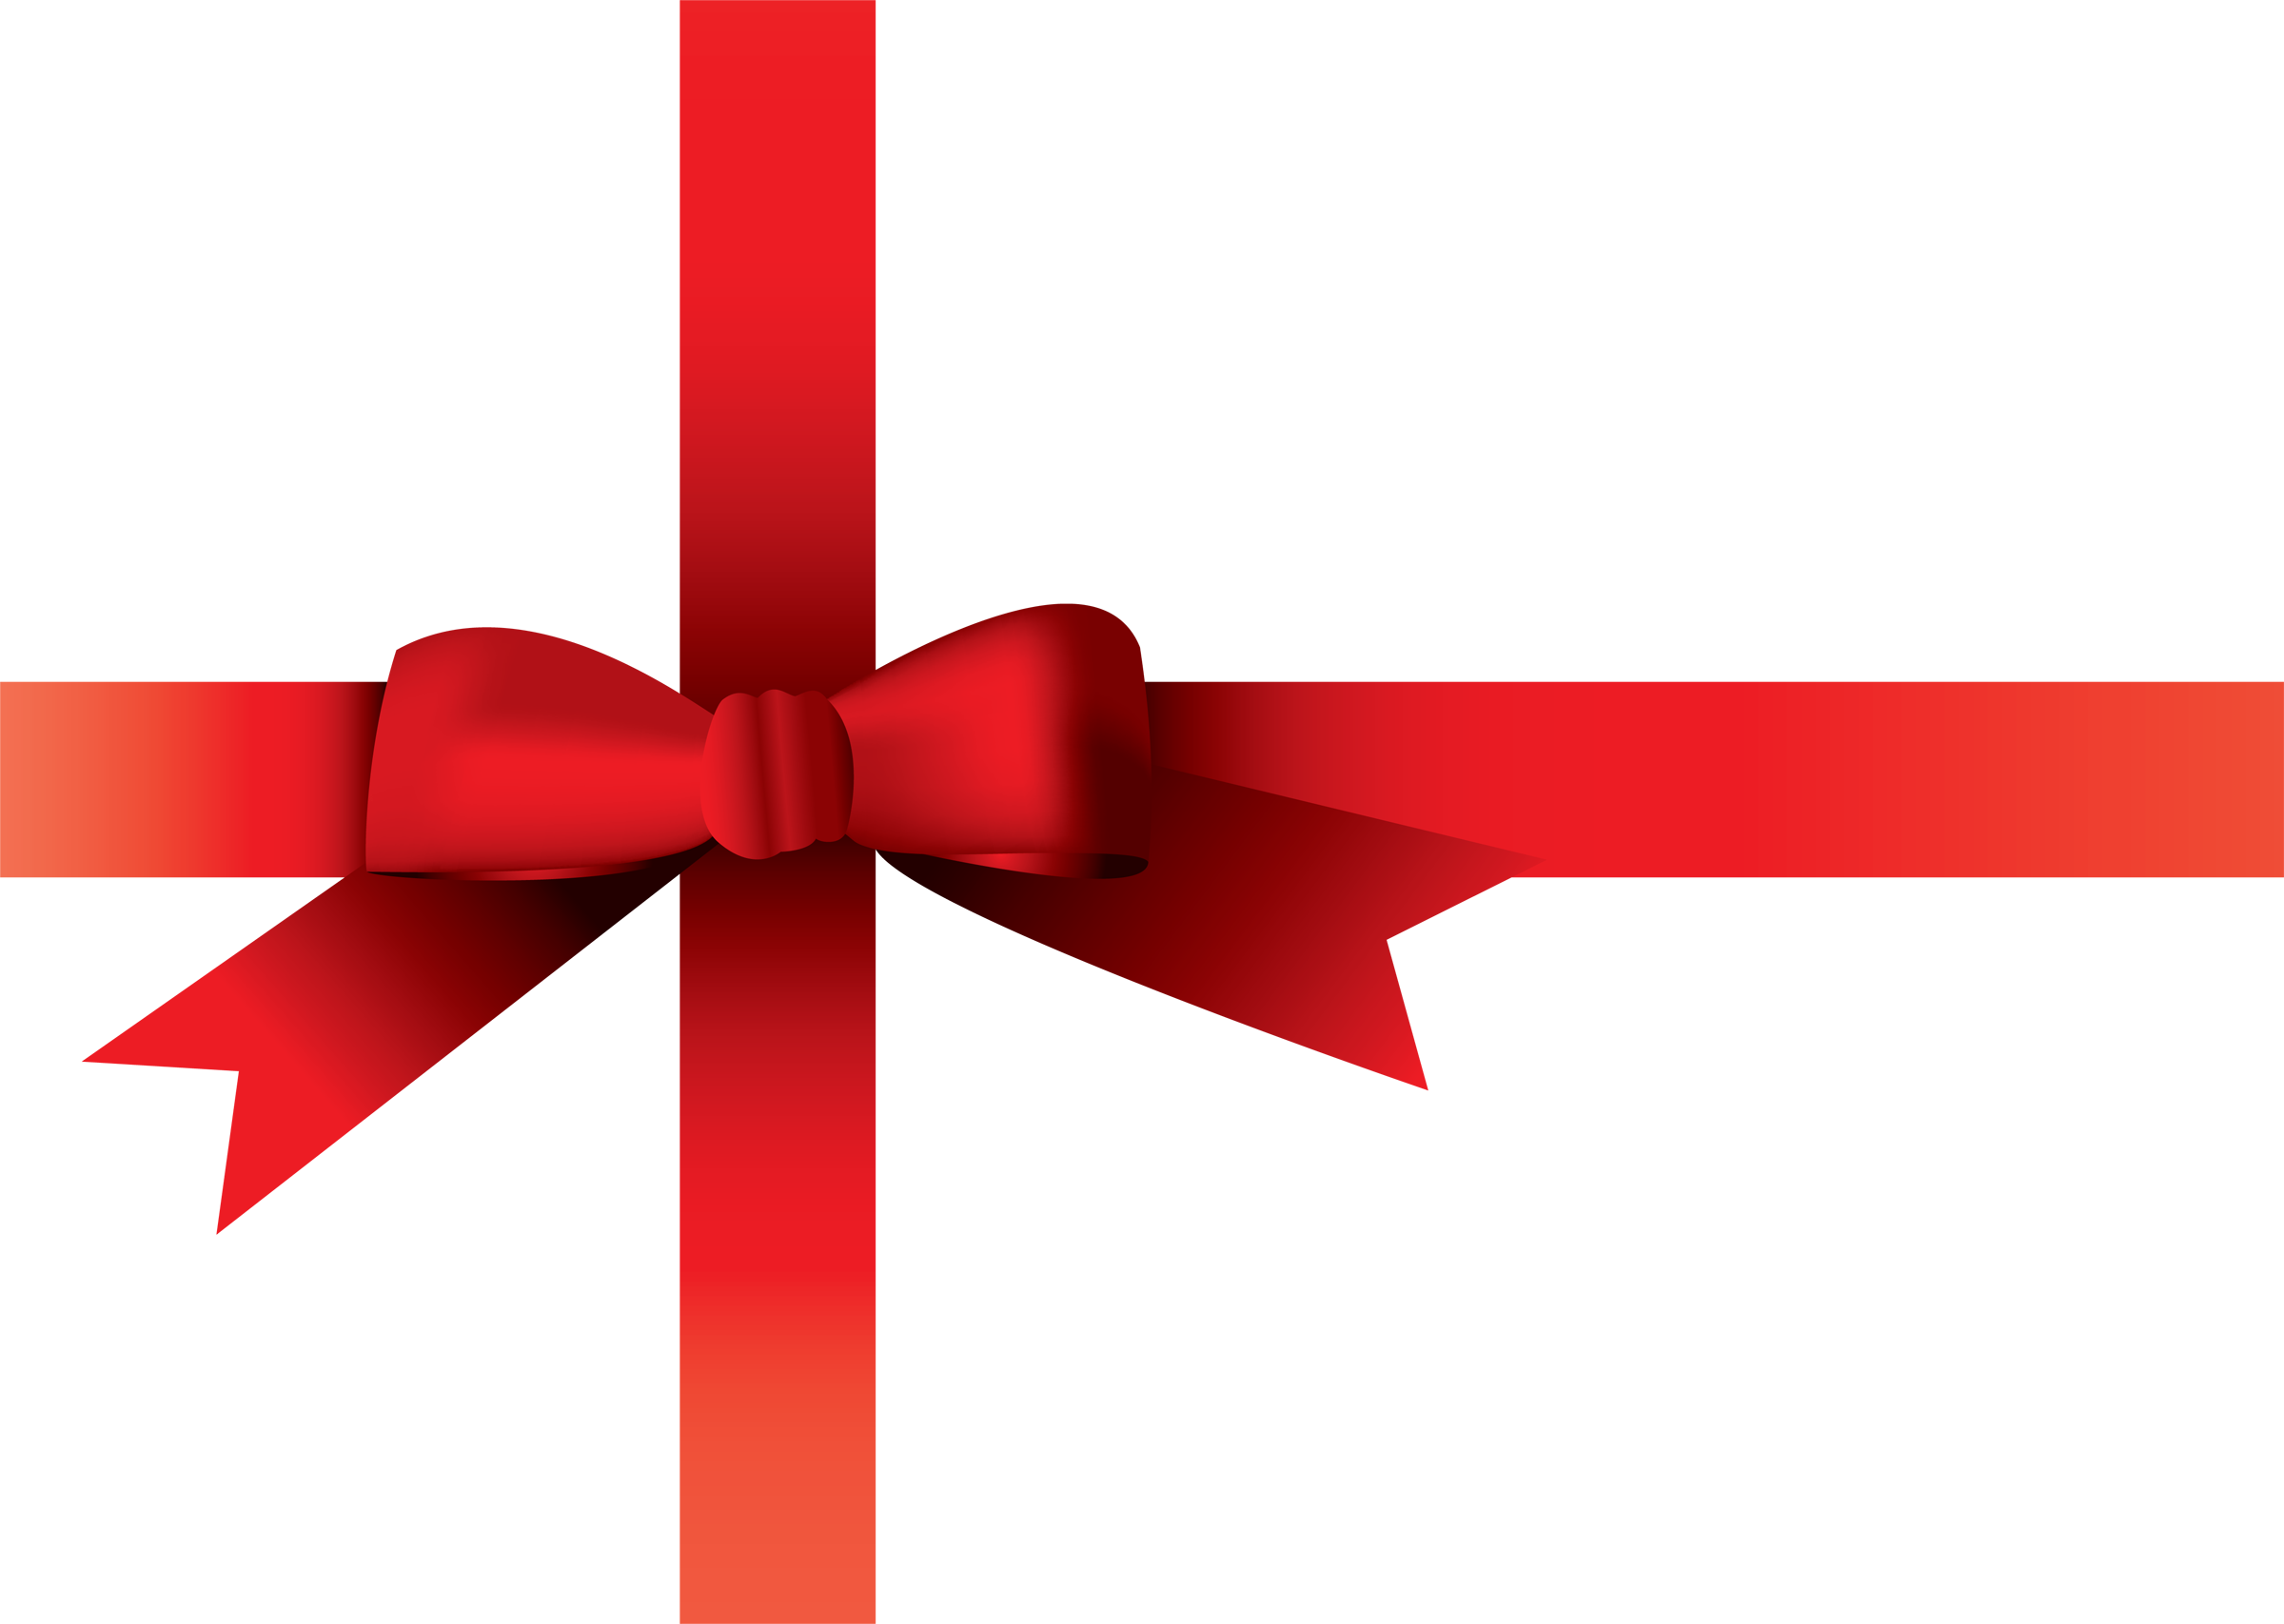 Christmas Bow Transparent Background - Red Christmas Bow PNG HD